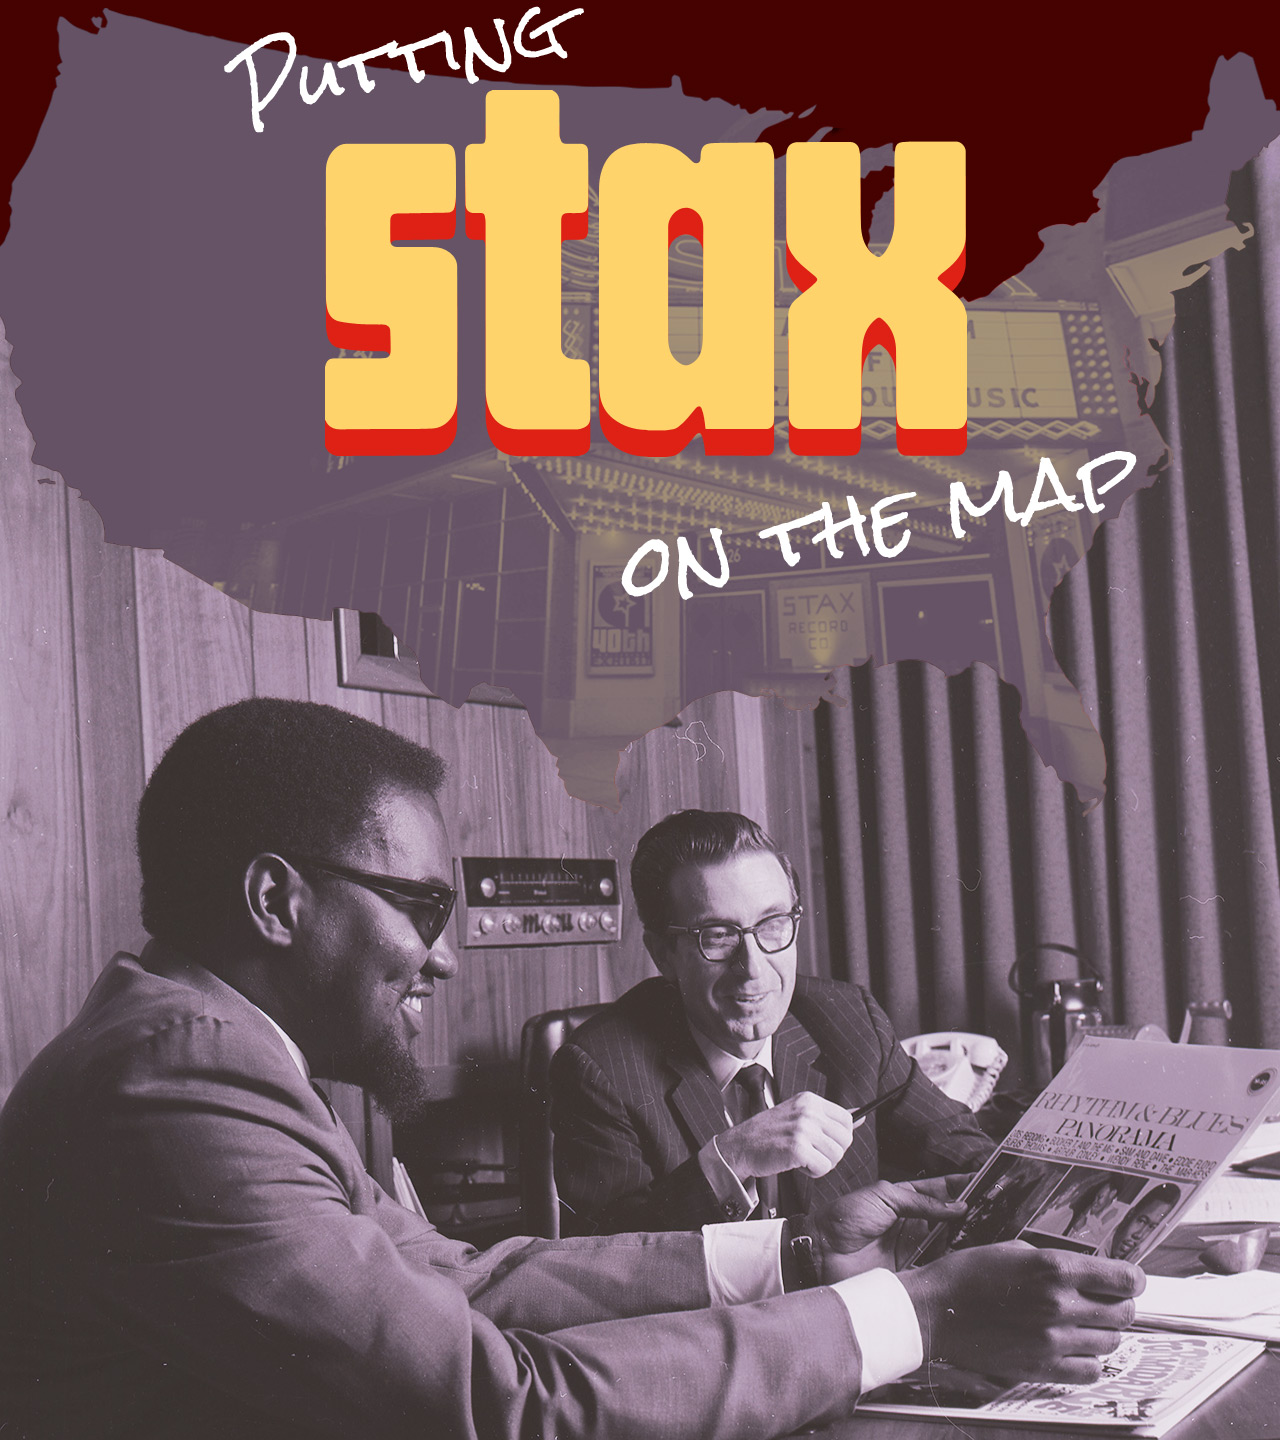 Jim Stewart and Bell collaborating at their shared desk at Stax